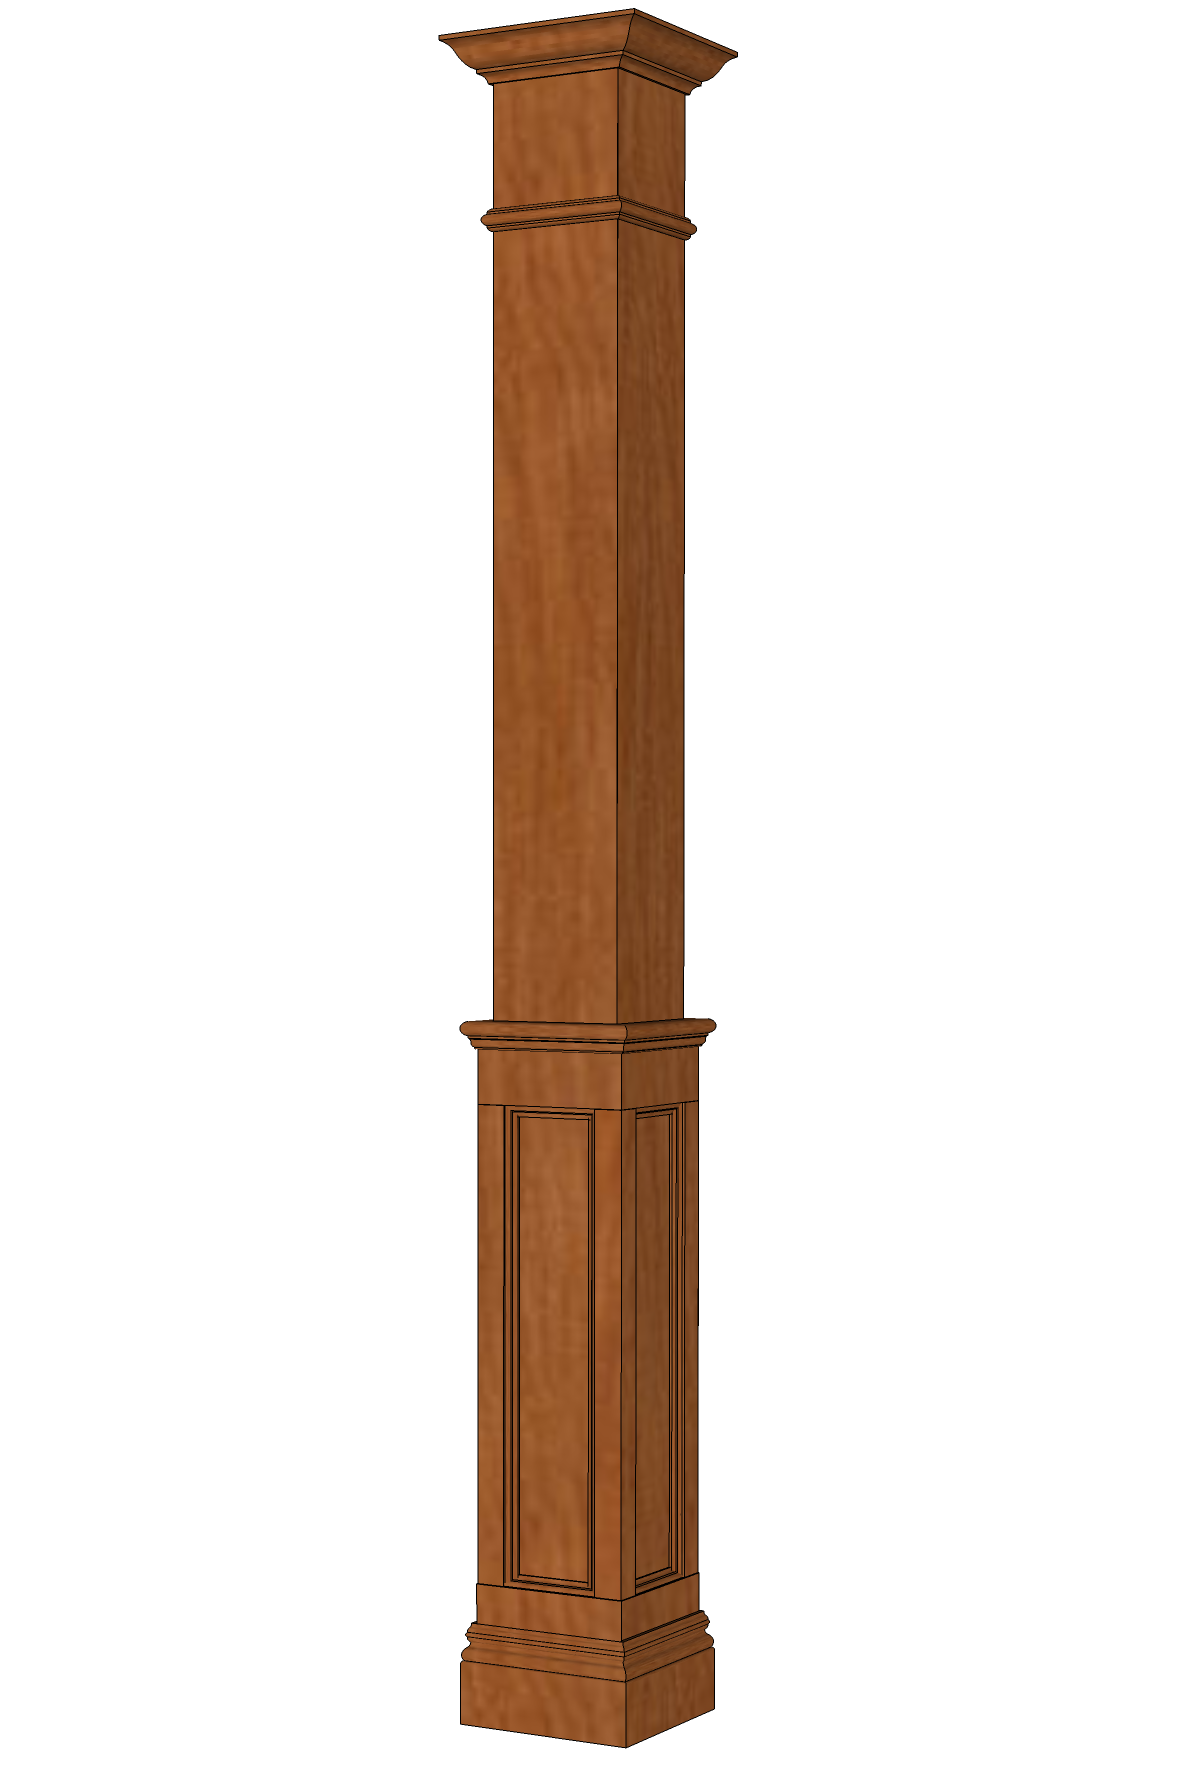 Square HALF Recessed Paneled Hardwood Column